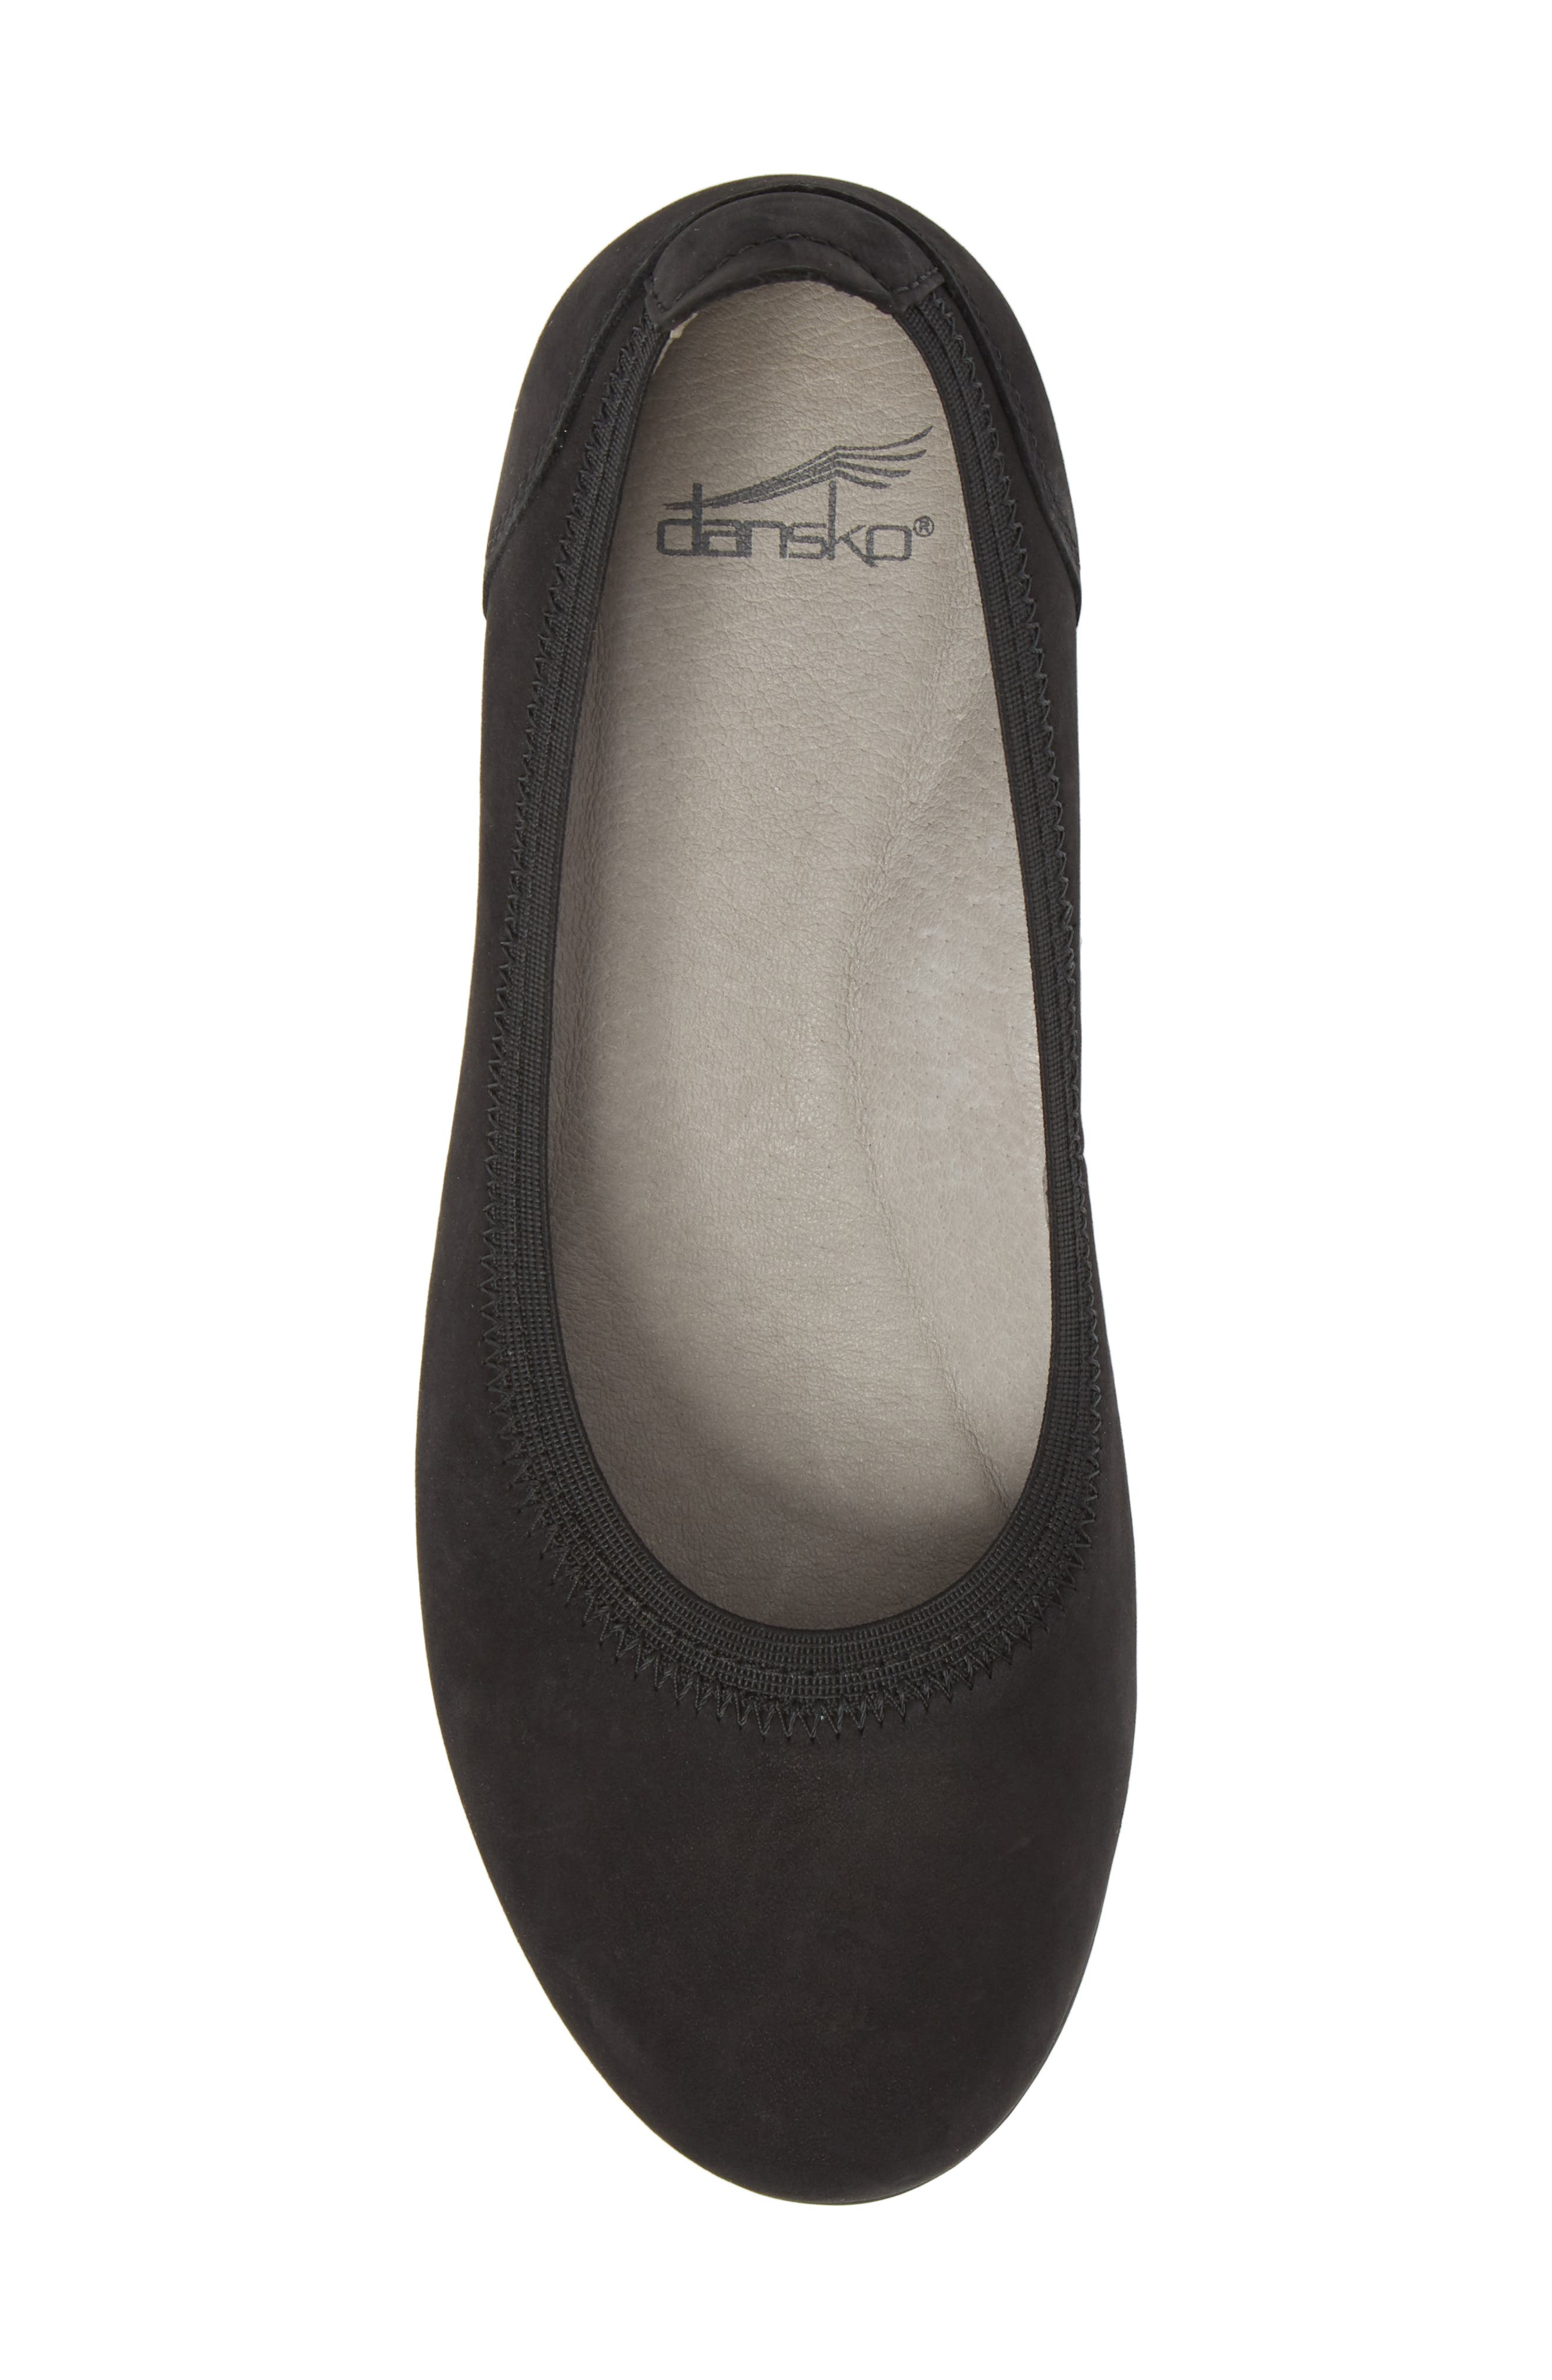 DANSKO, Kristen Ballet Flat, Alternate thumbnail 5, color, BLACK MILLED NUBUCK